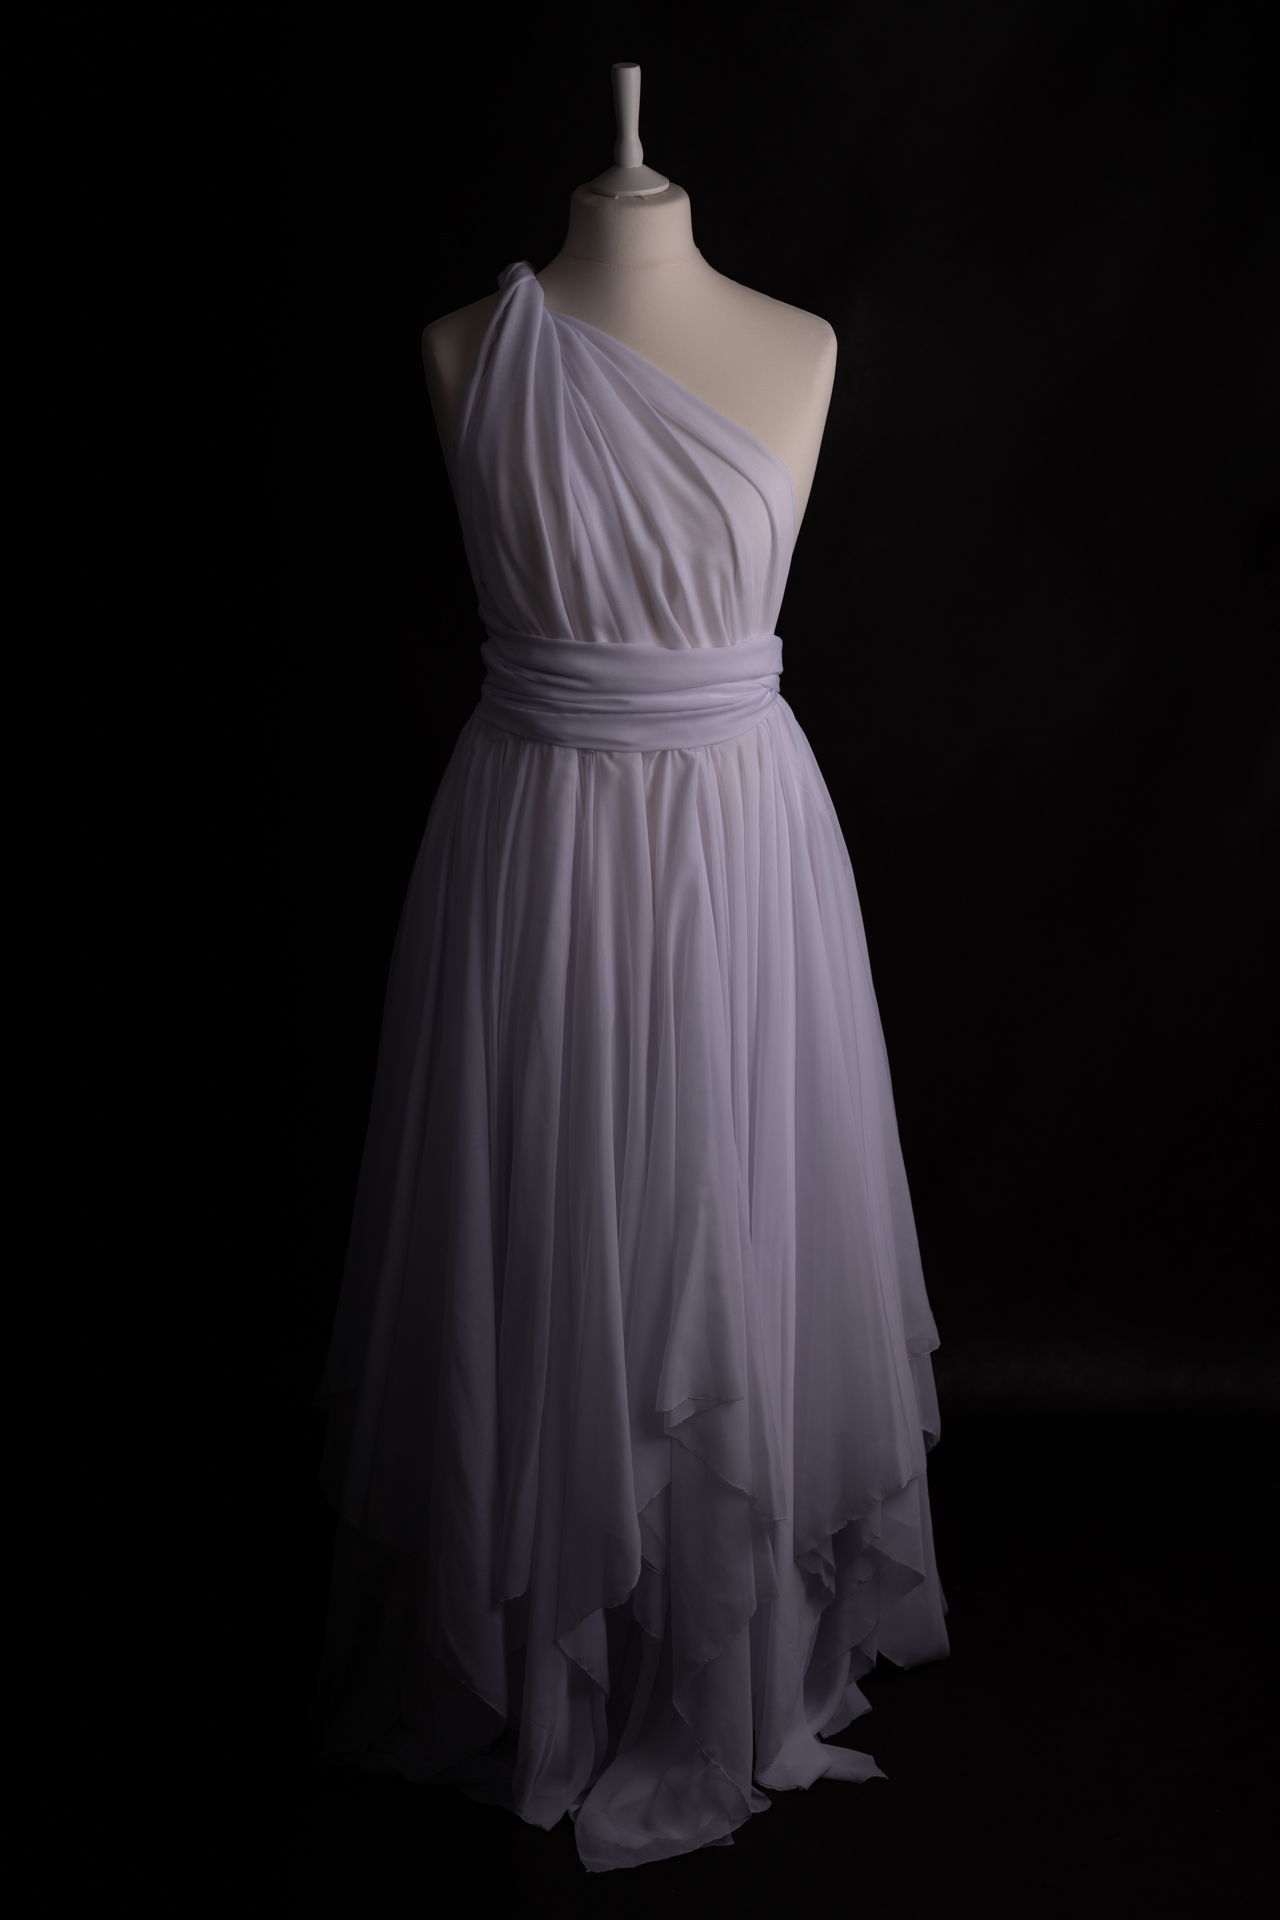 Infinity Dress blanche (voile et chiffons)